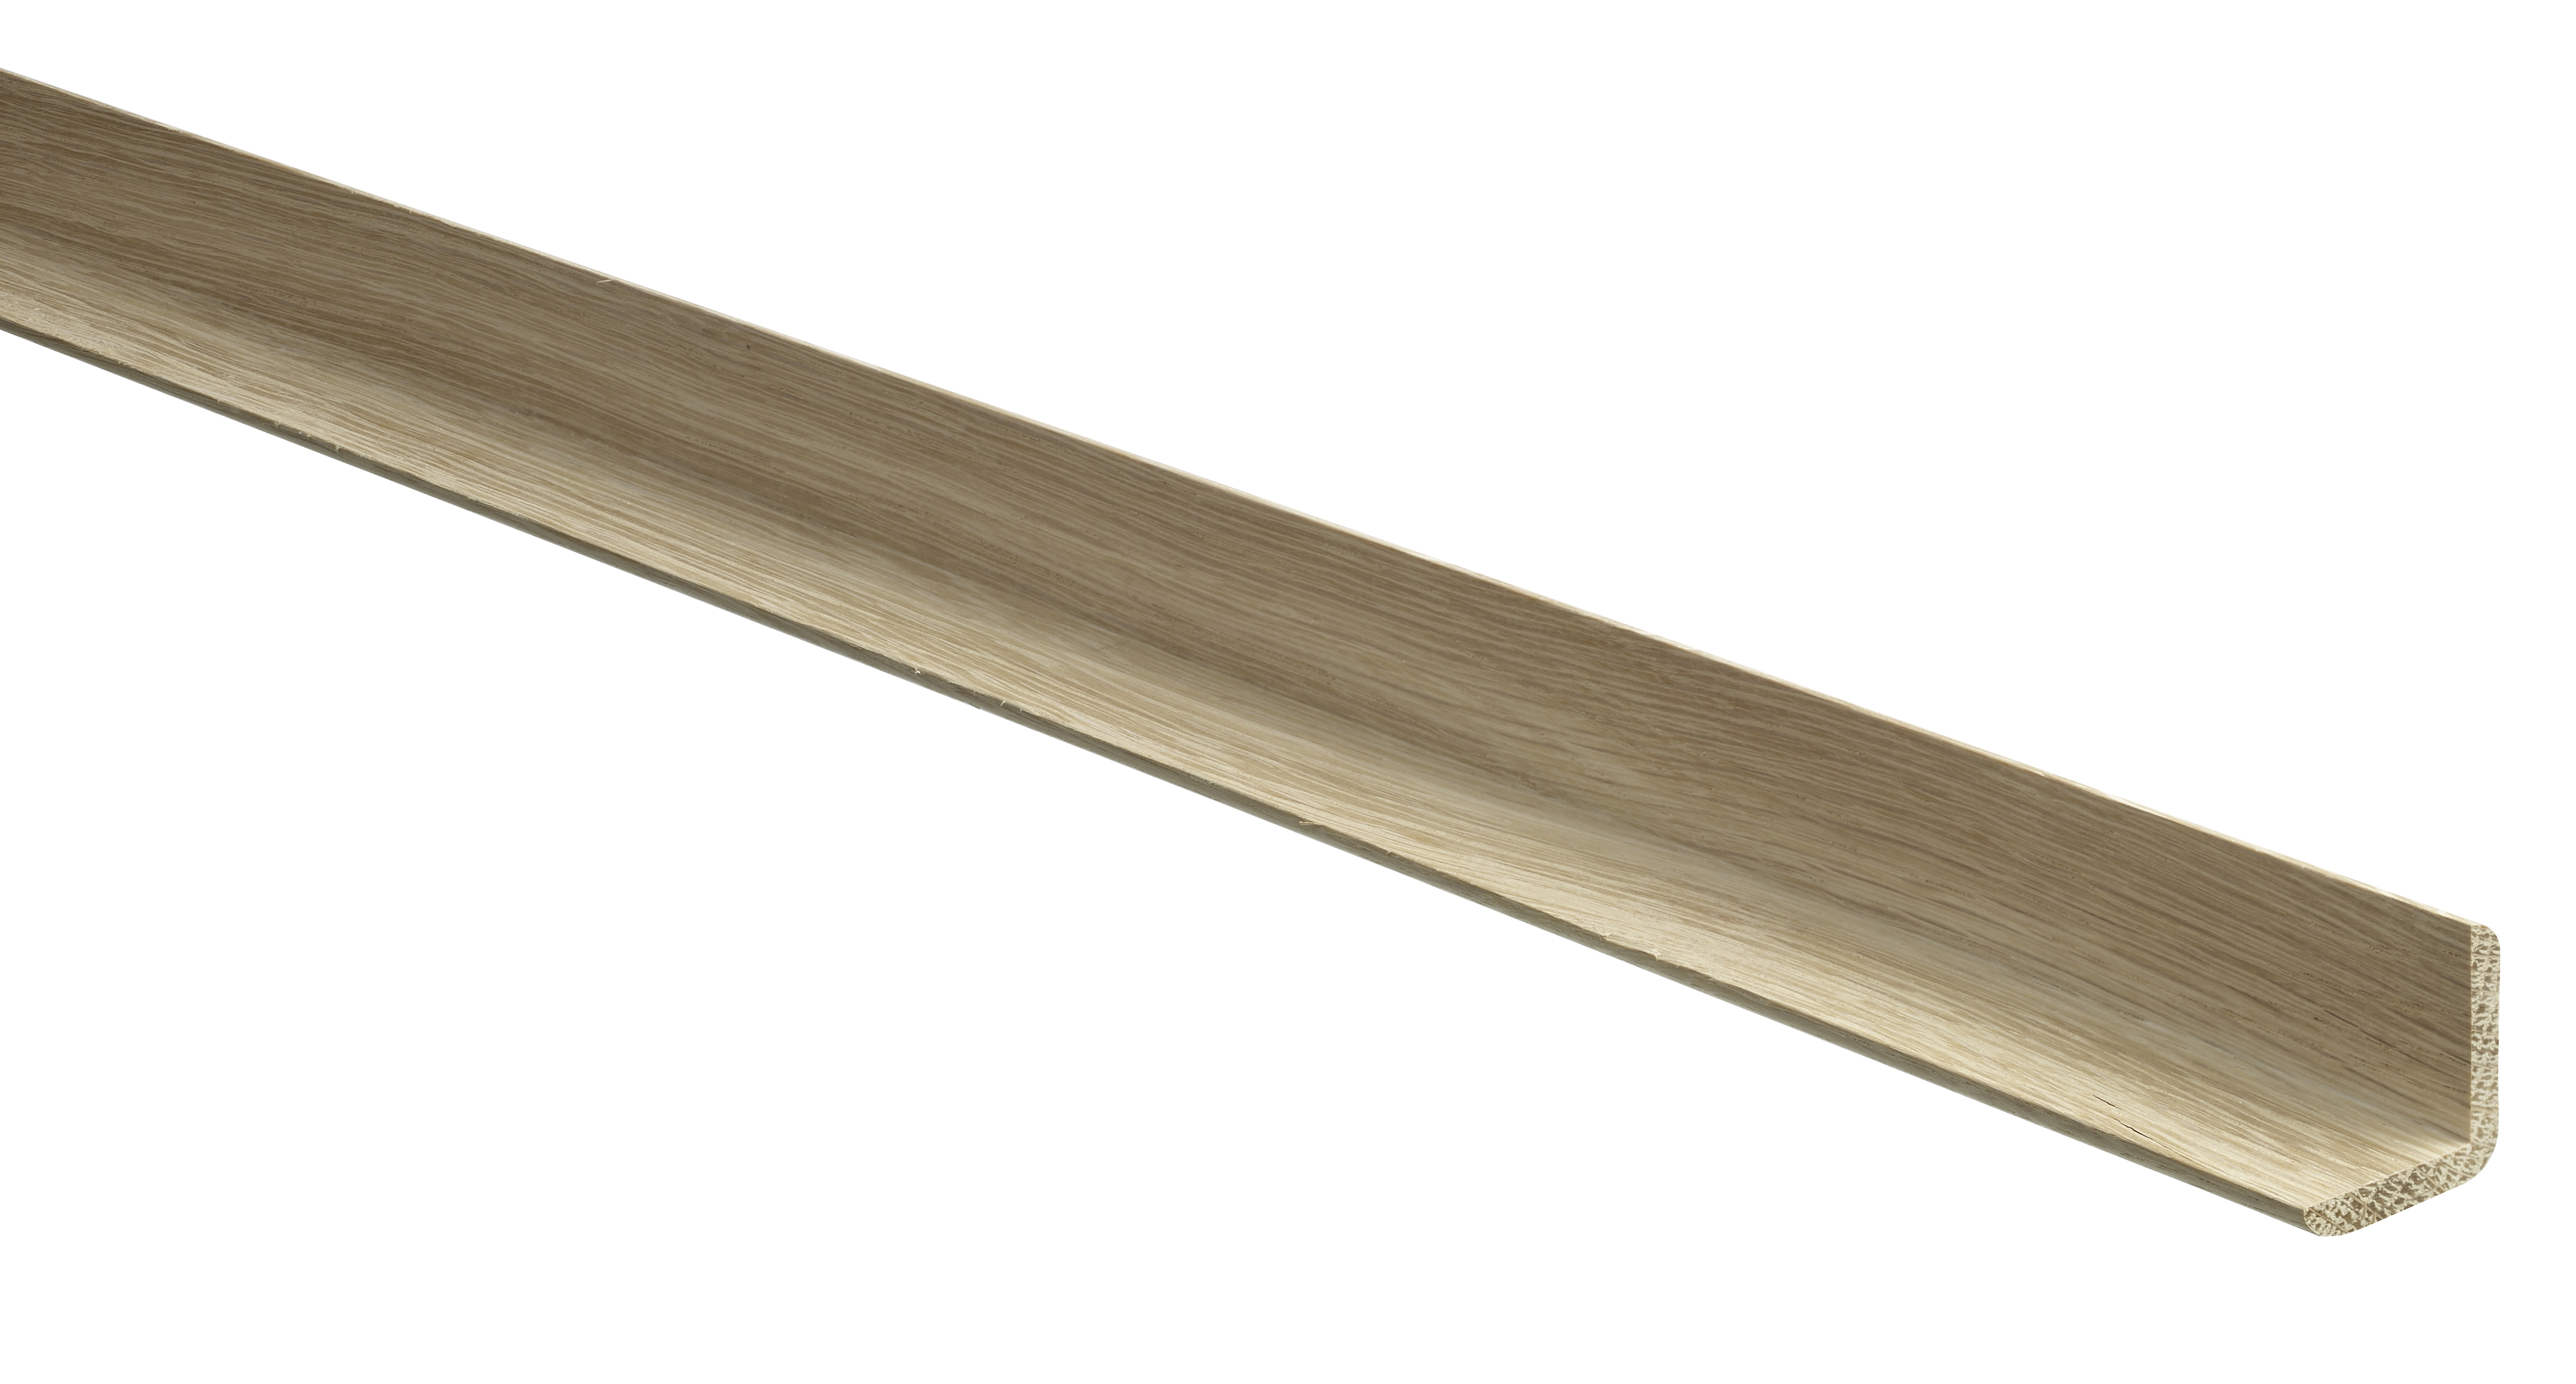 15 White Oak Basic Angle Mouldings 27 x 27 x 2400mm